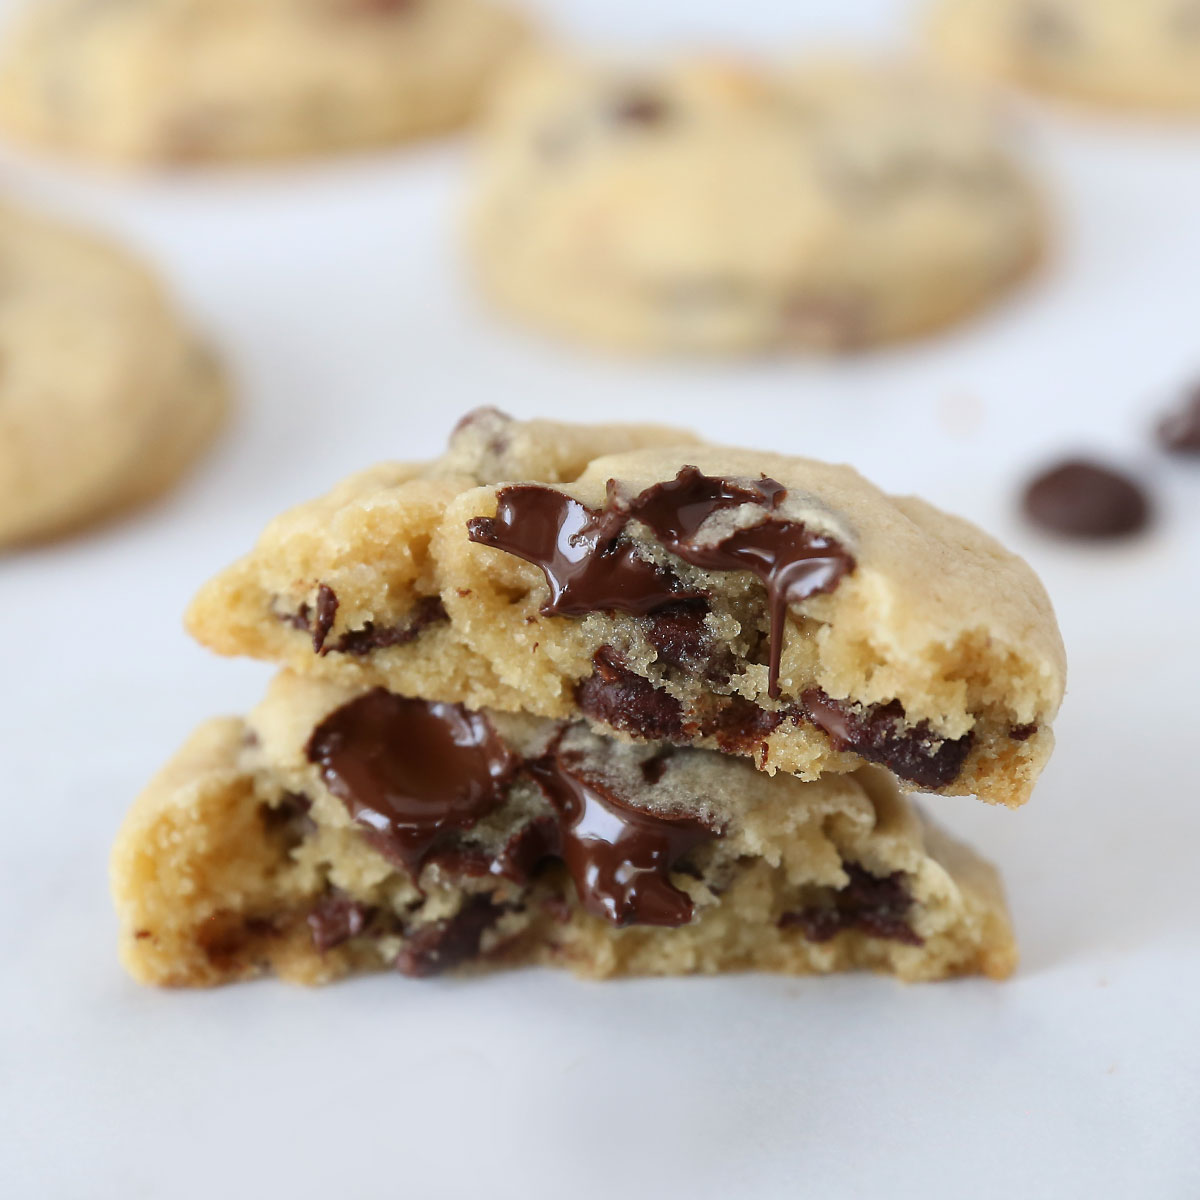 A chocolate chip cookie broken in half to show the soft center and melty chocolate